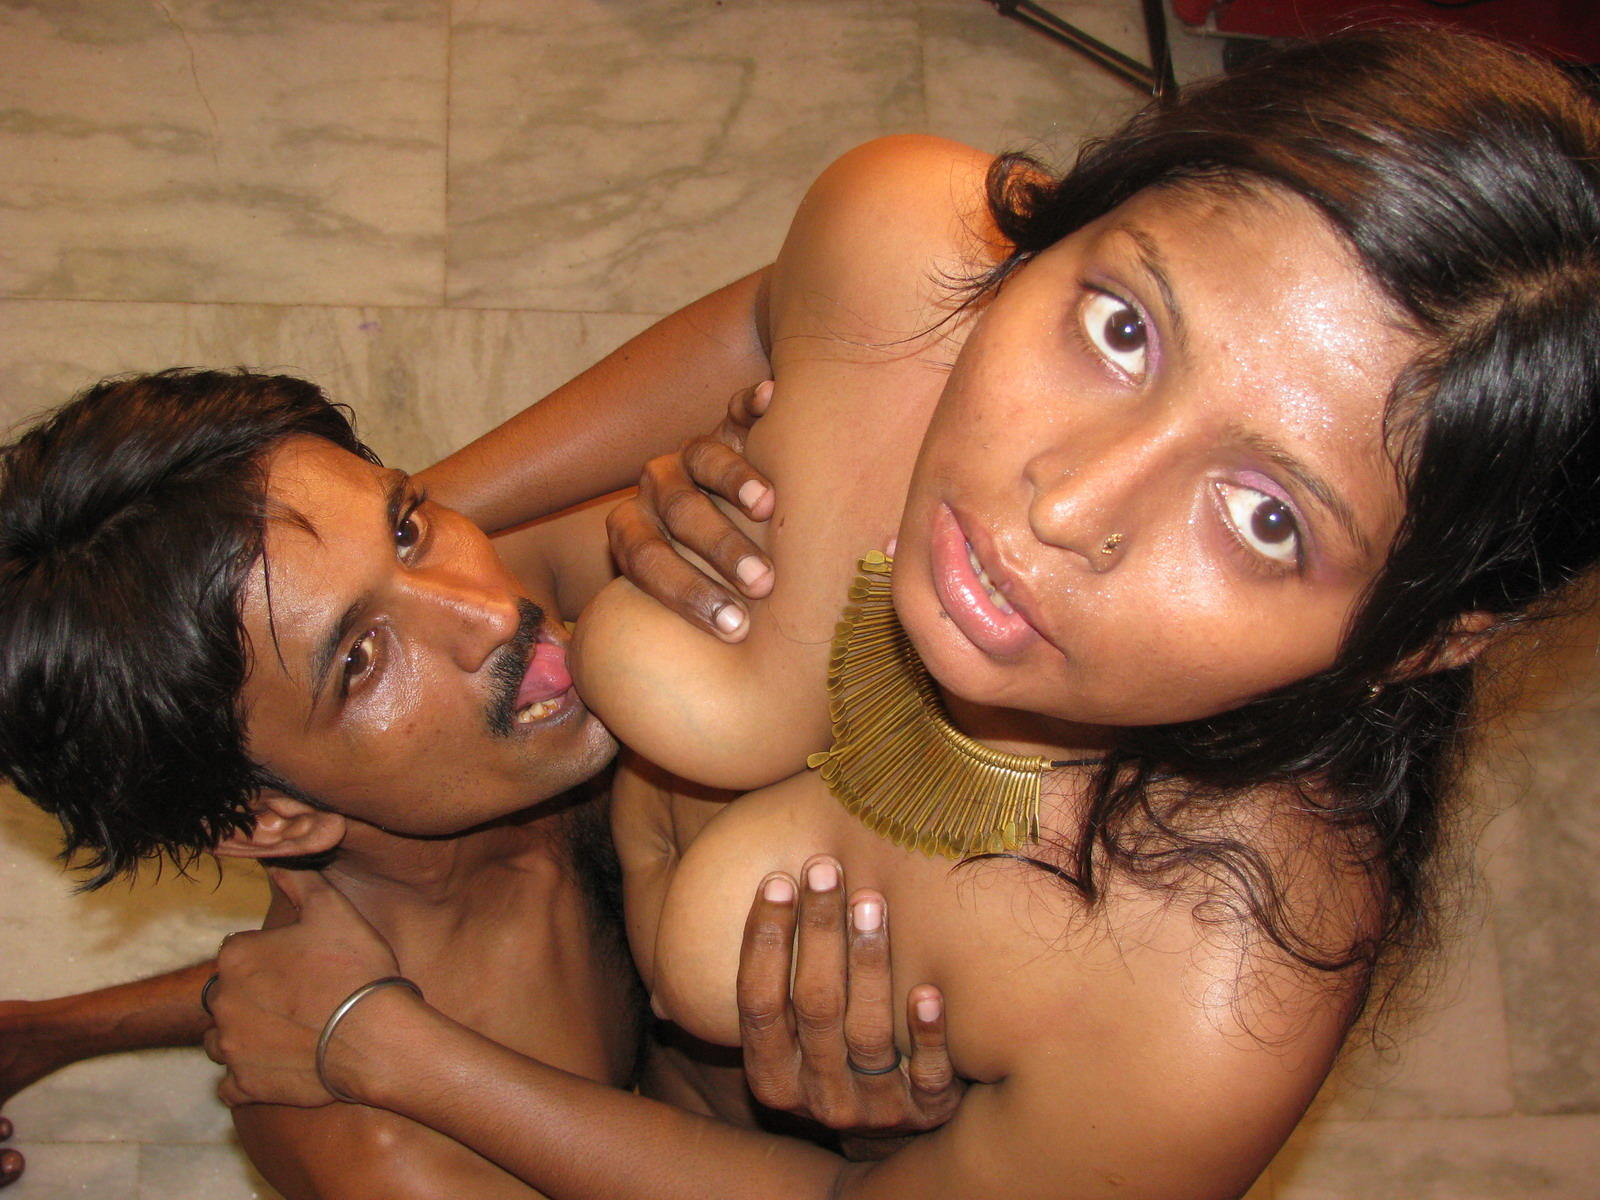 Bangladeshi girls naked pictures Premarital sex mortal sin ...